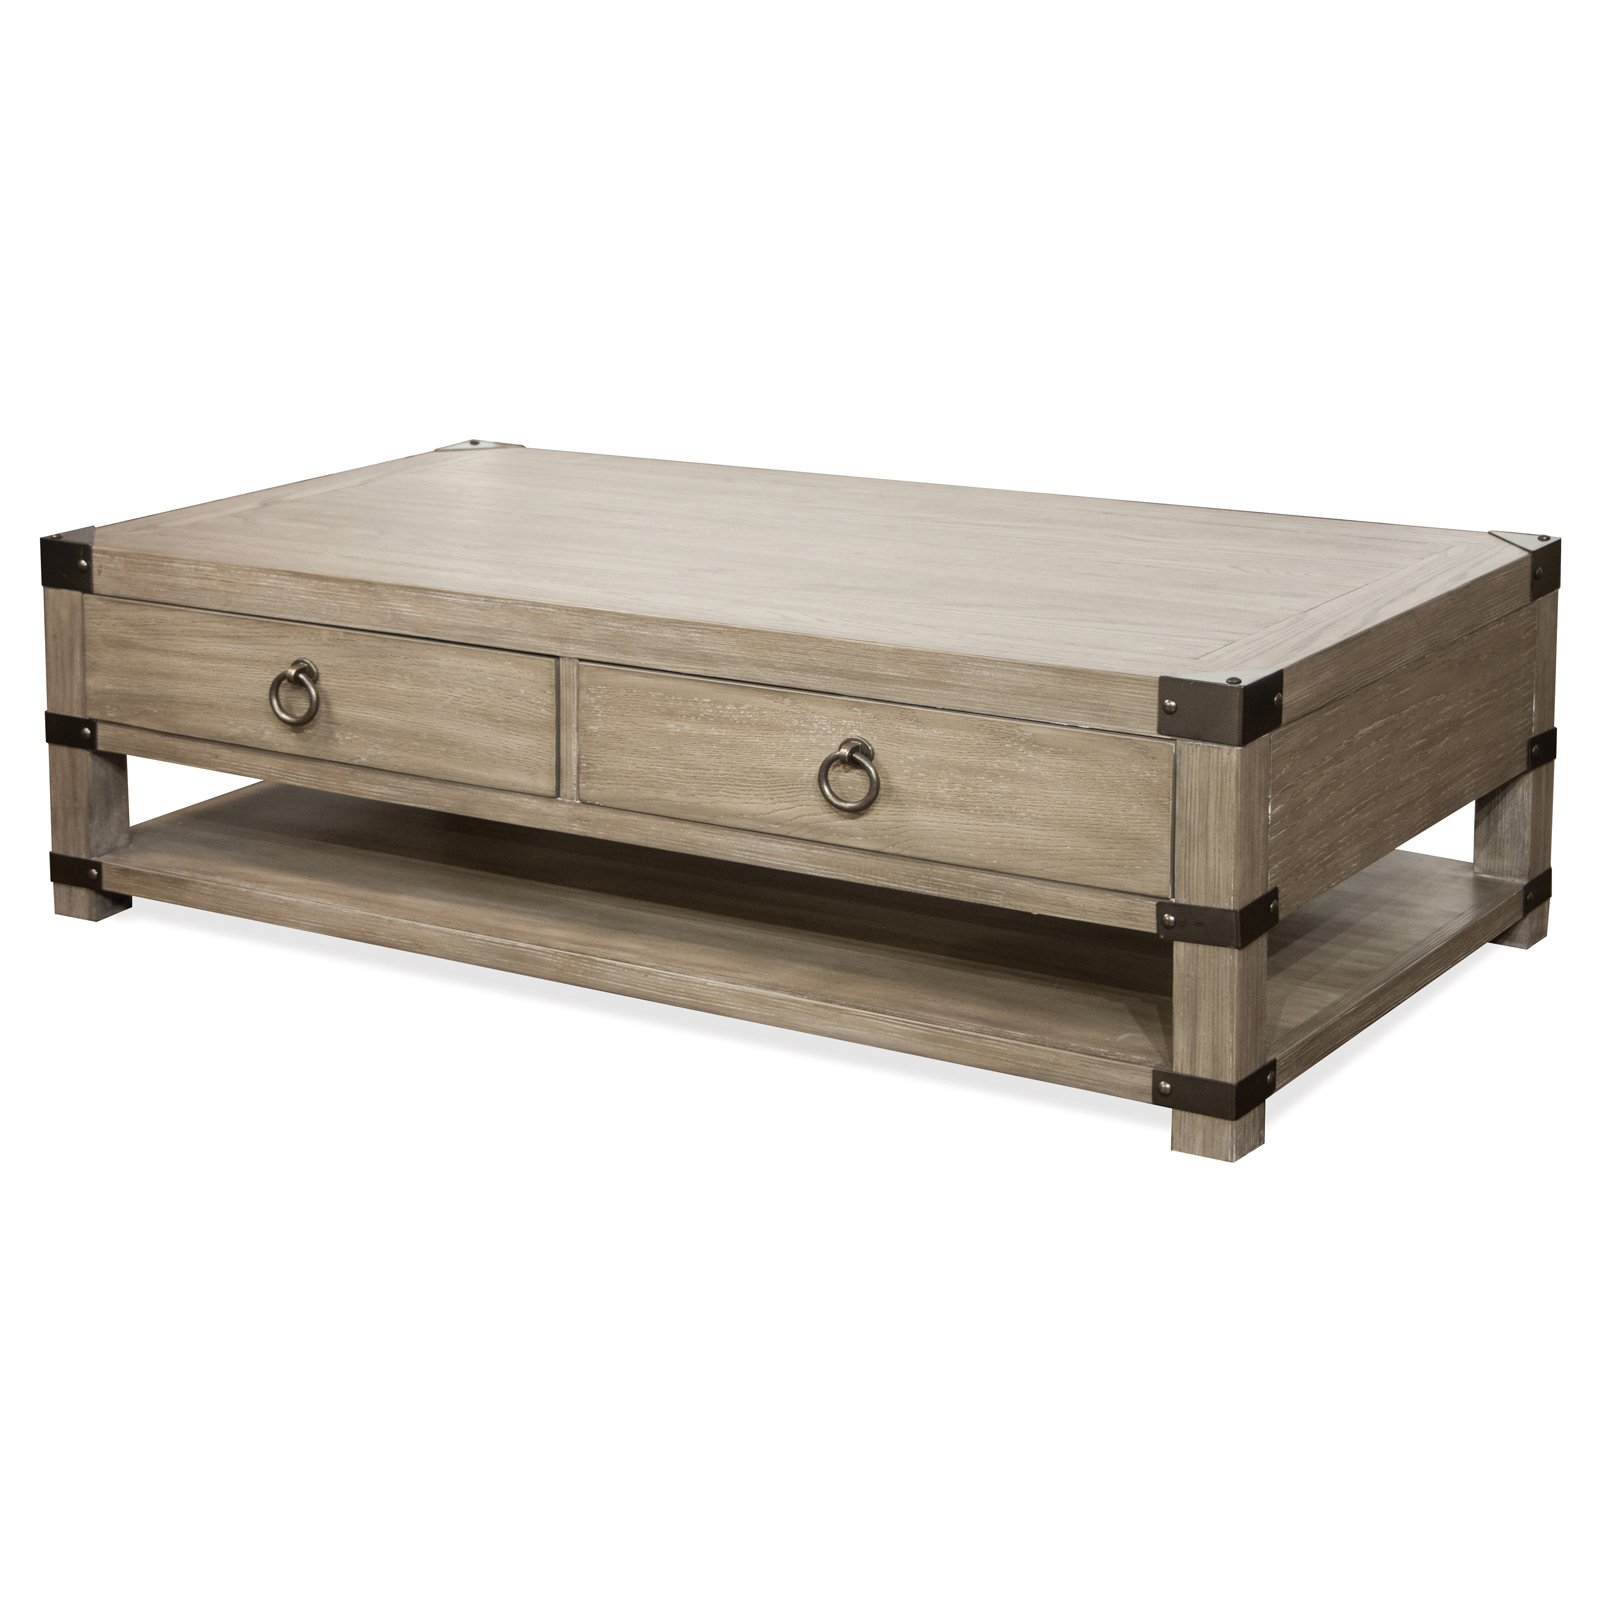 Riverside Furniture Myra Caster Coffee Table